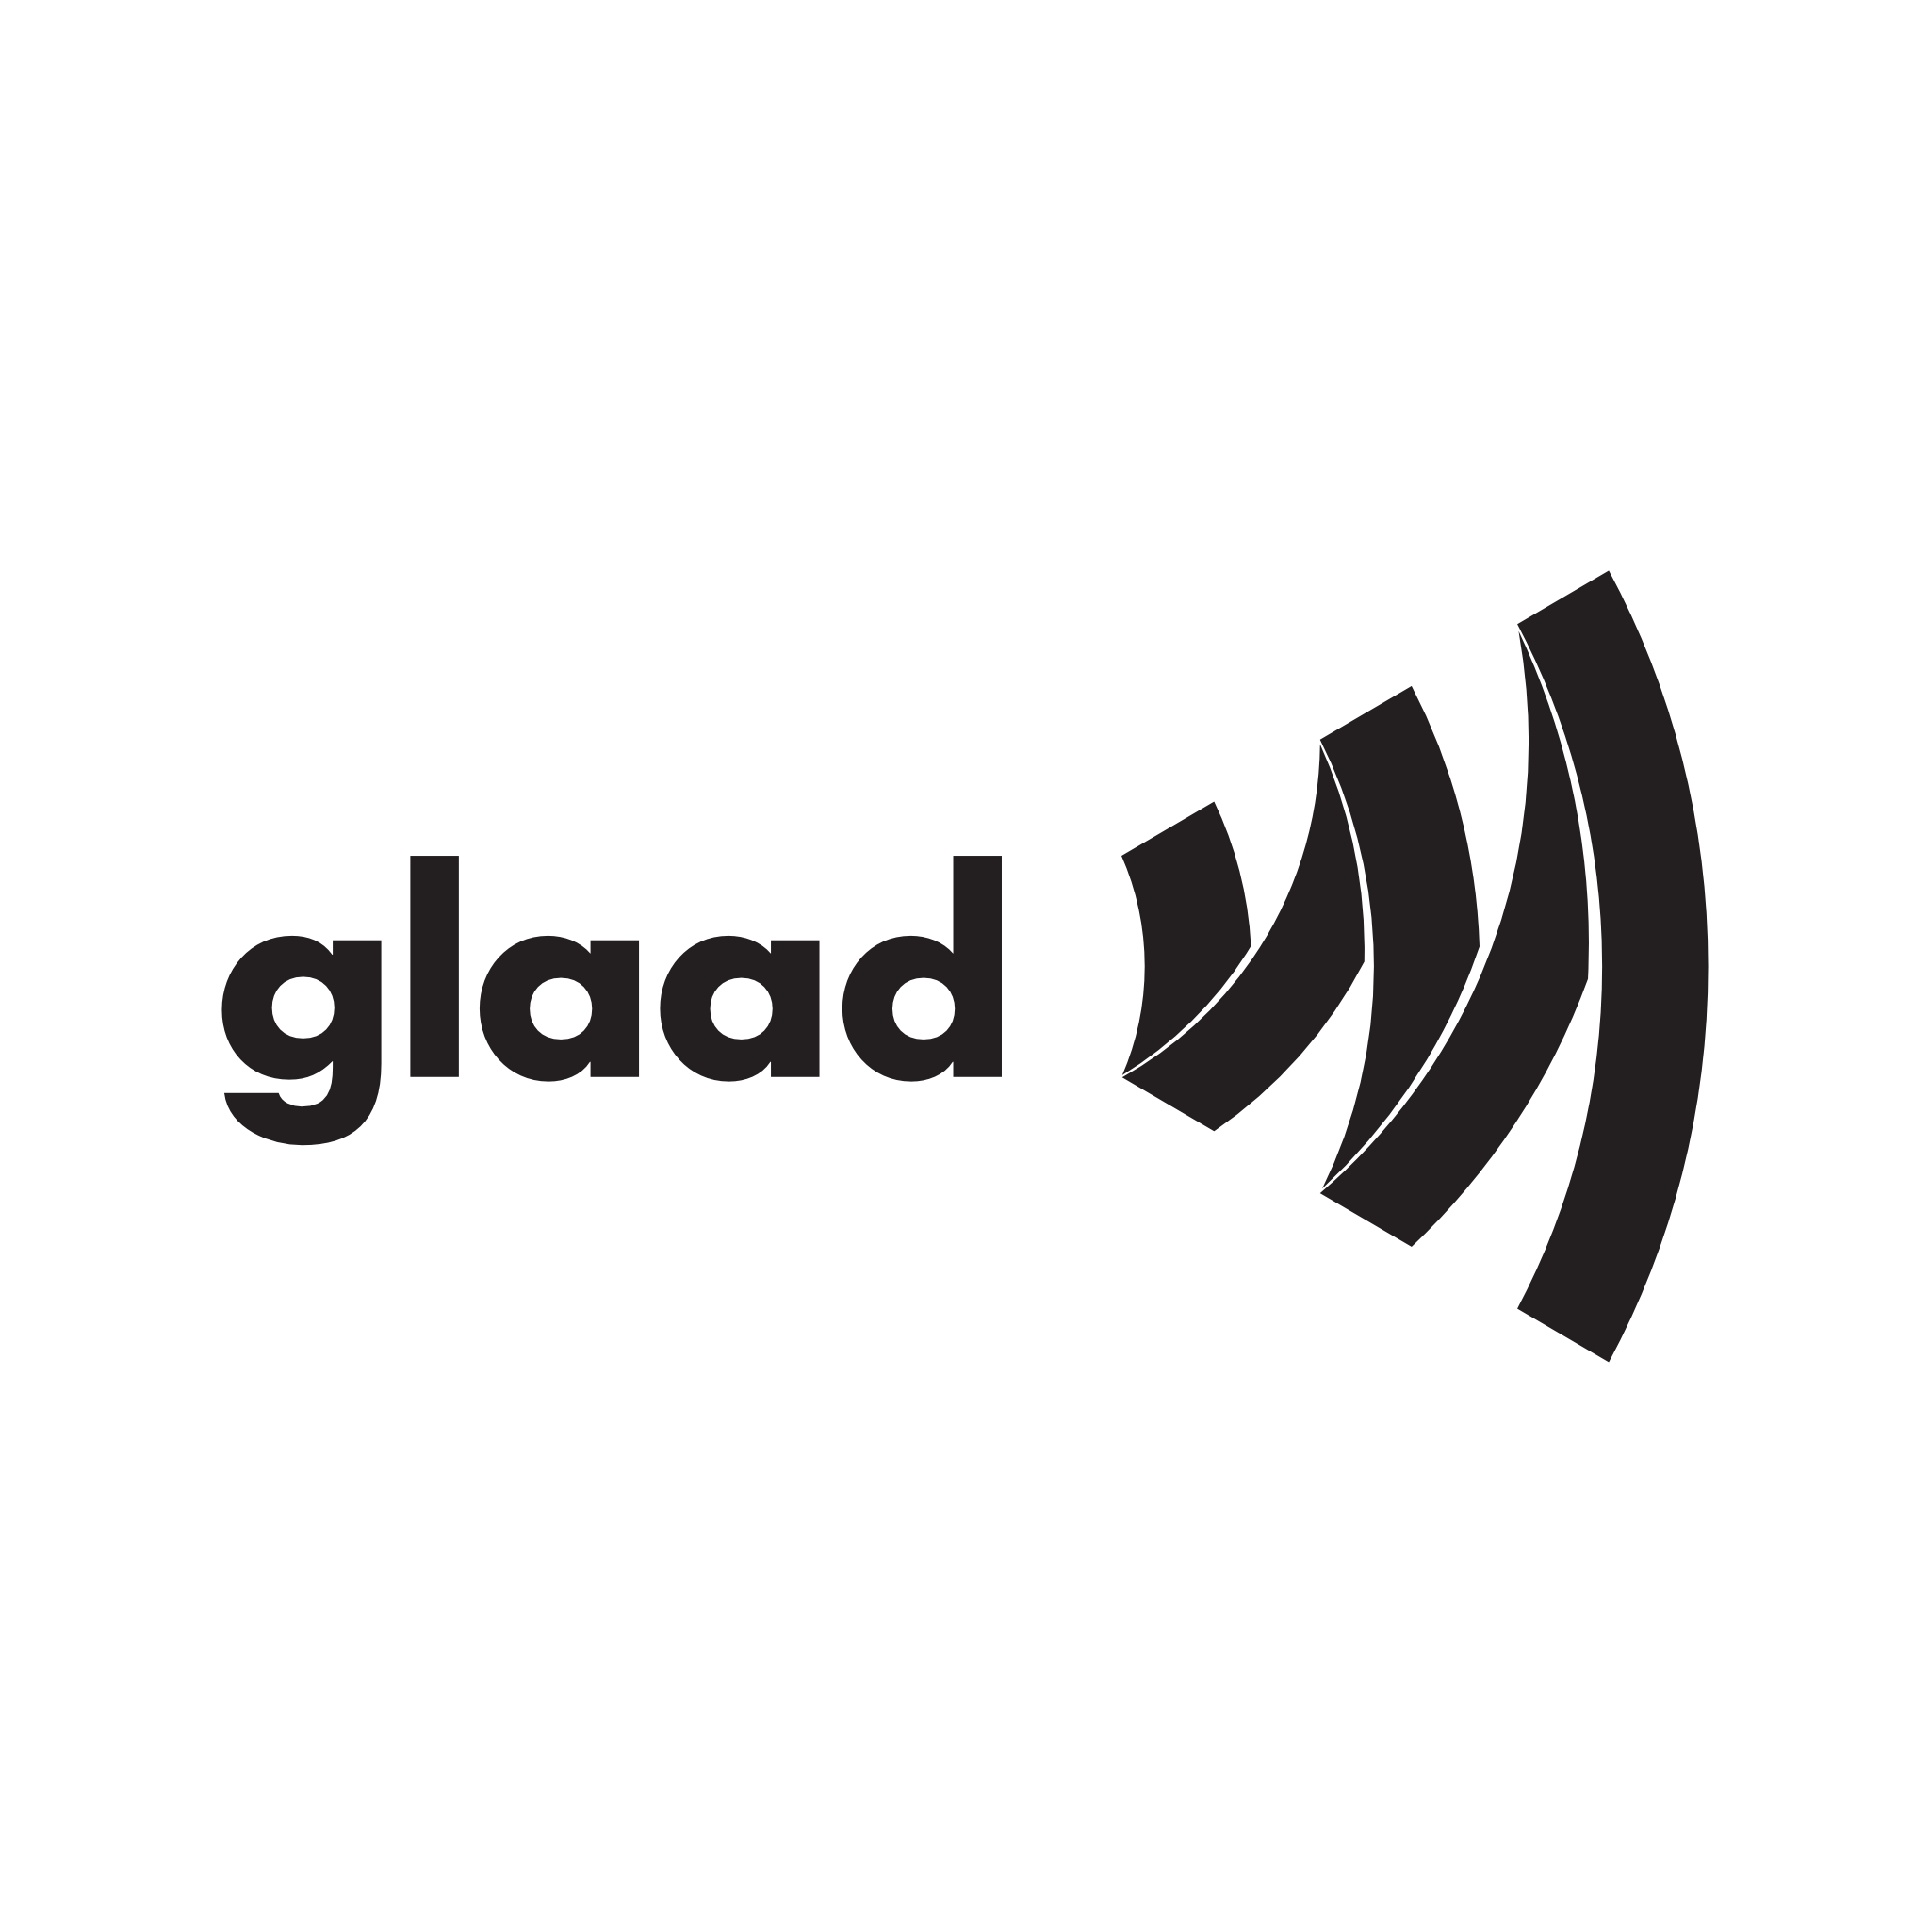 glaad-square.png